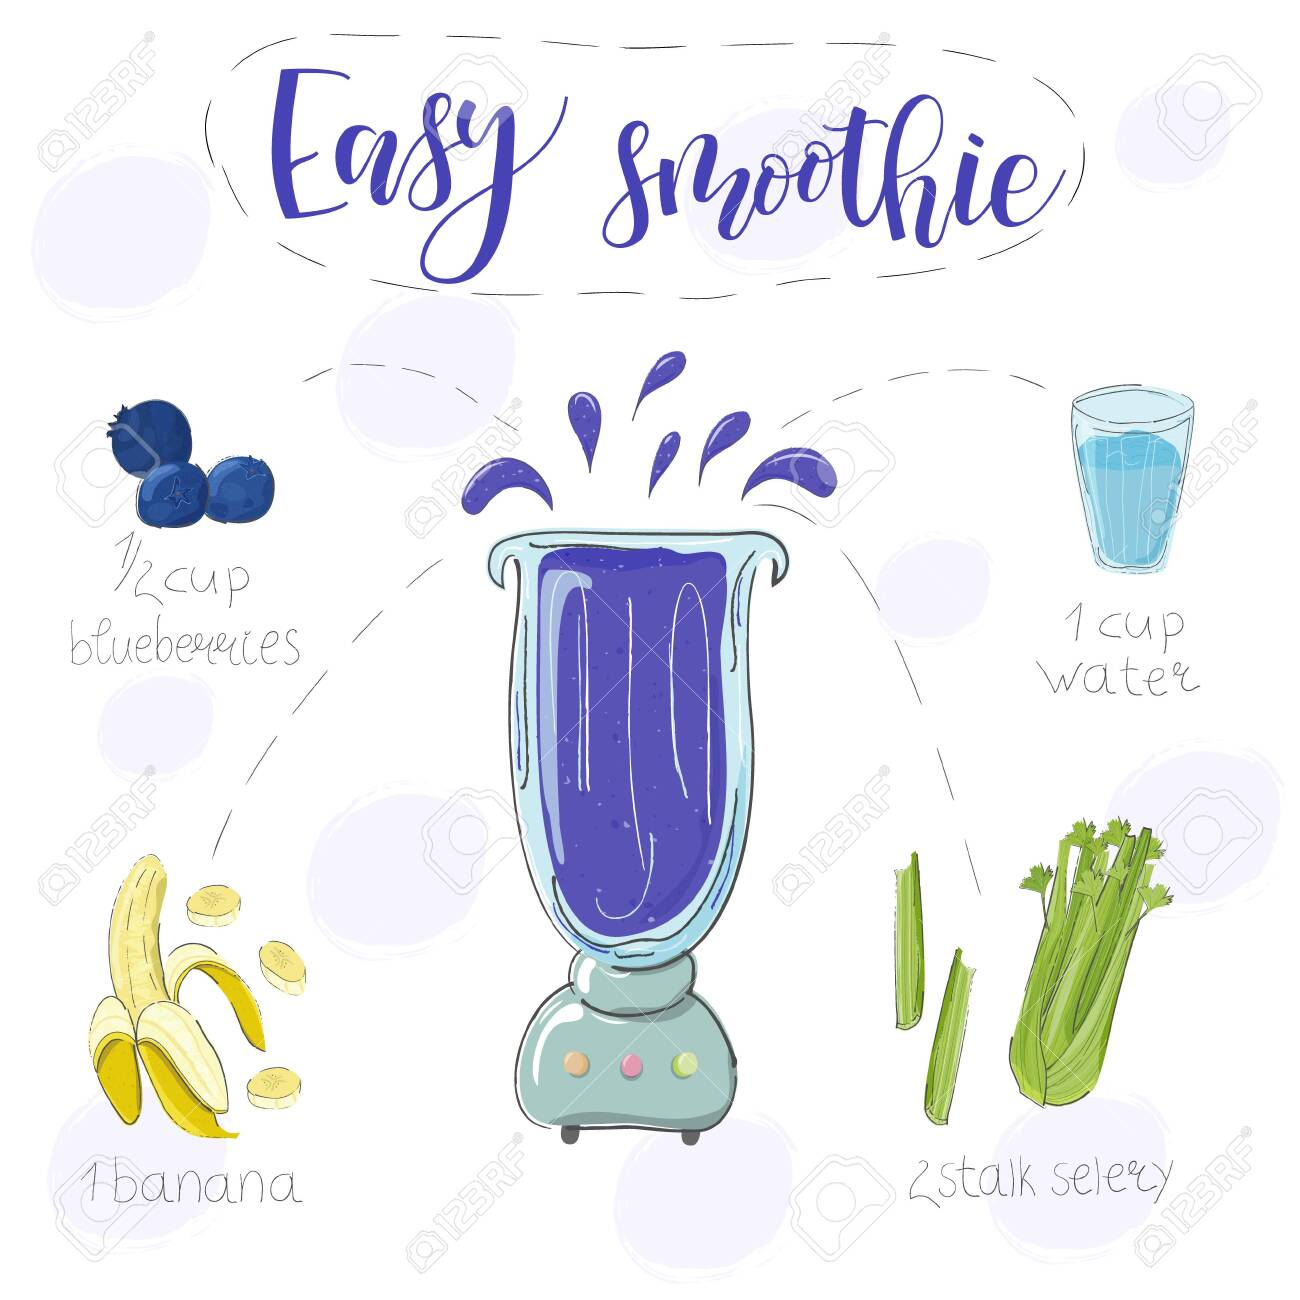 Easy smoothie recipe. With illustration of ingredients. Hand draw blueberries, banana, selery. Doodle style - 142335884